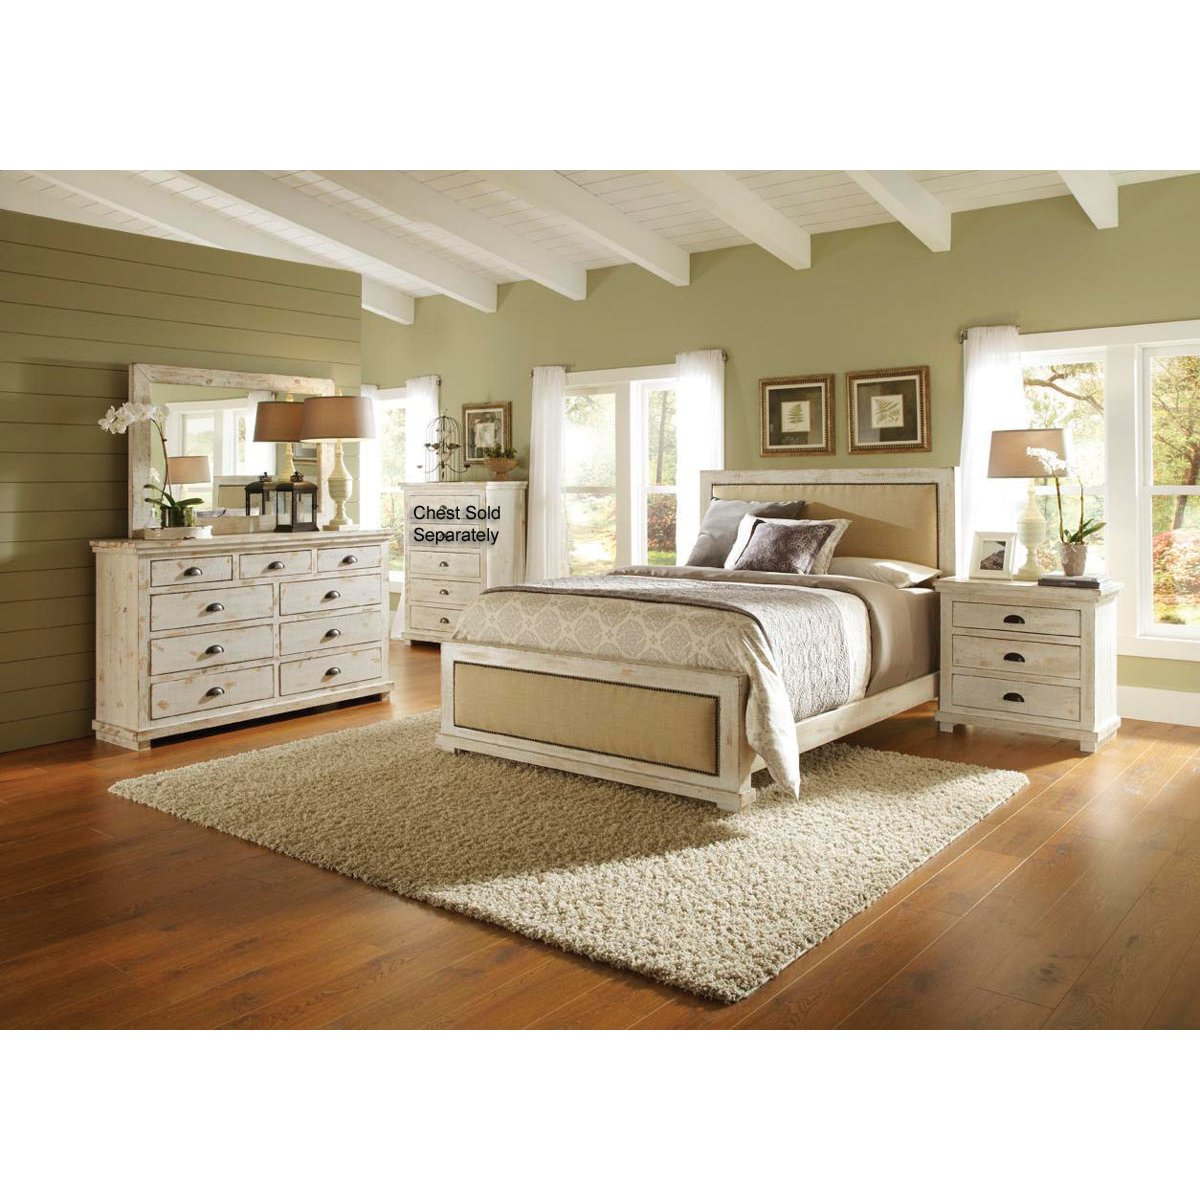 Bedroom sets, bedroom furniture sets & bedroom set | RC Willey ...